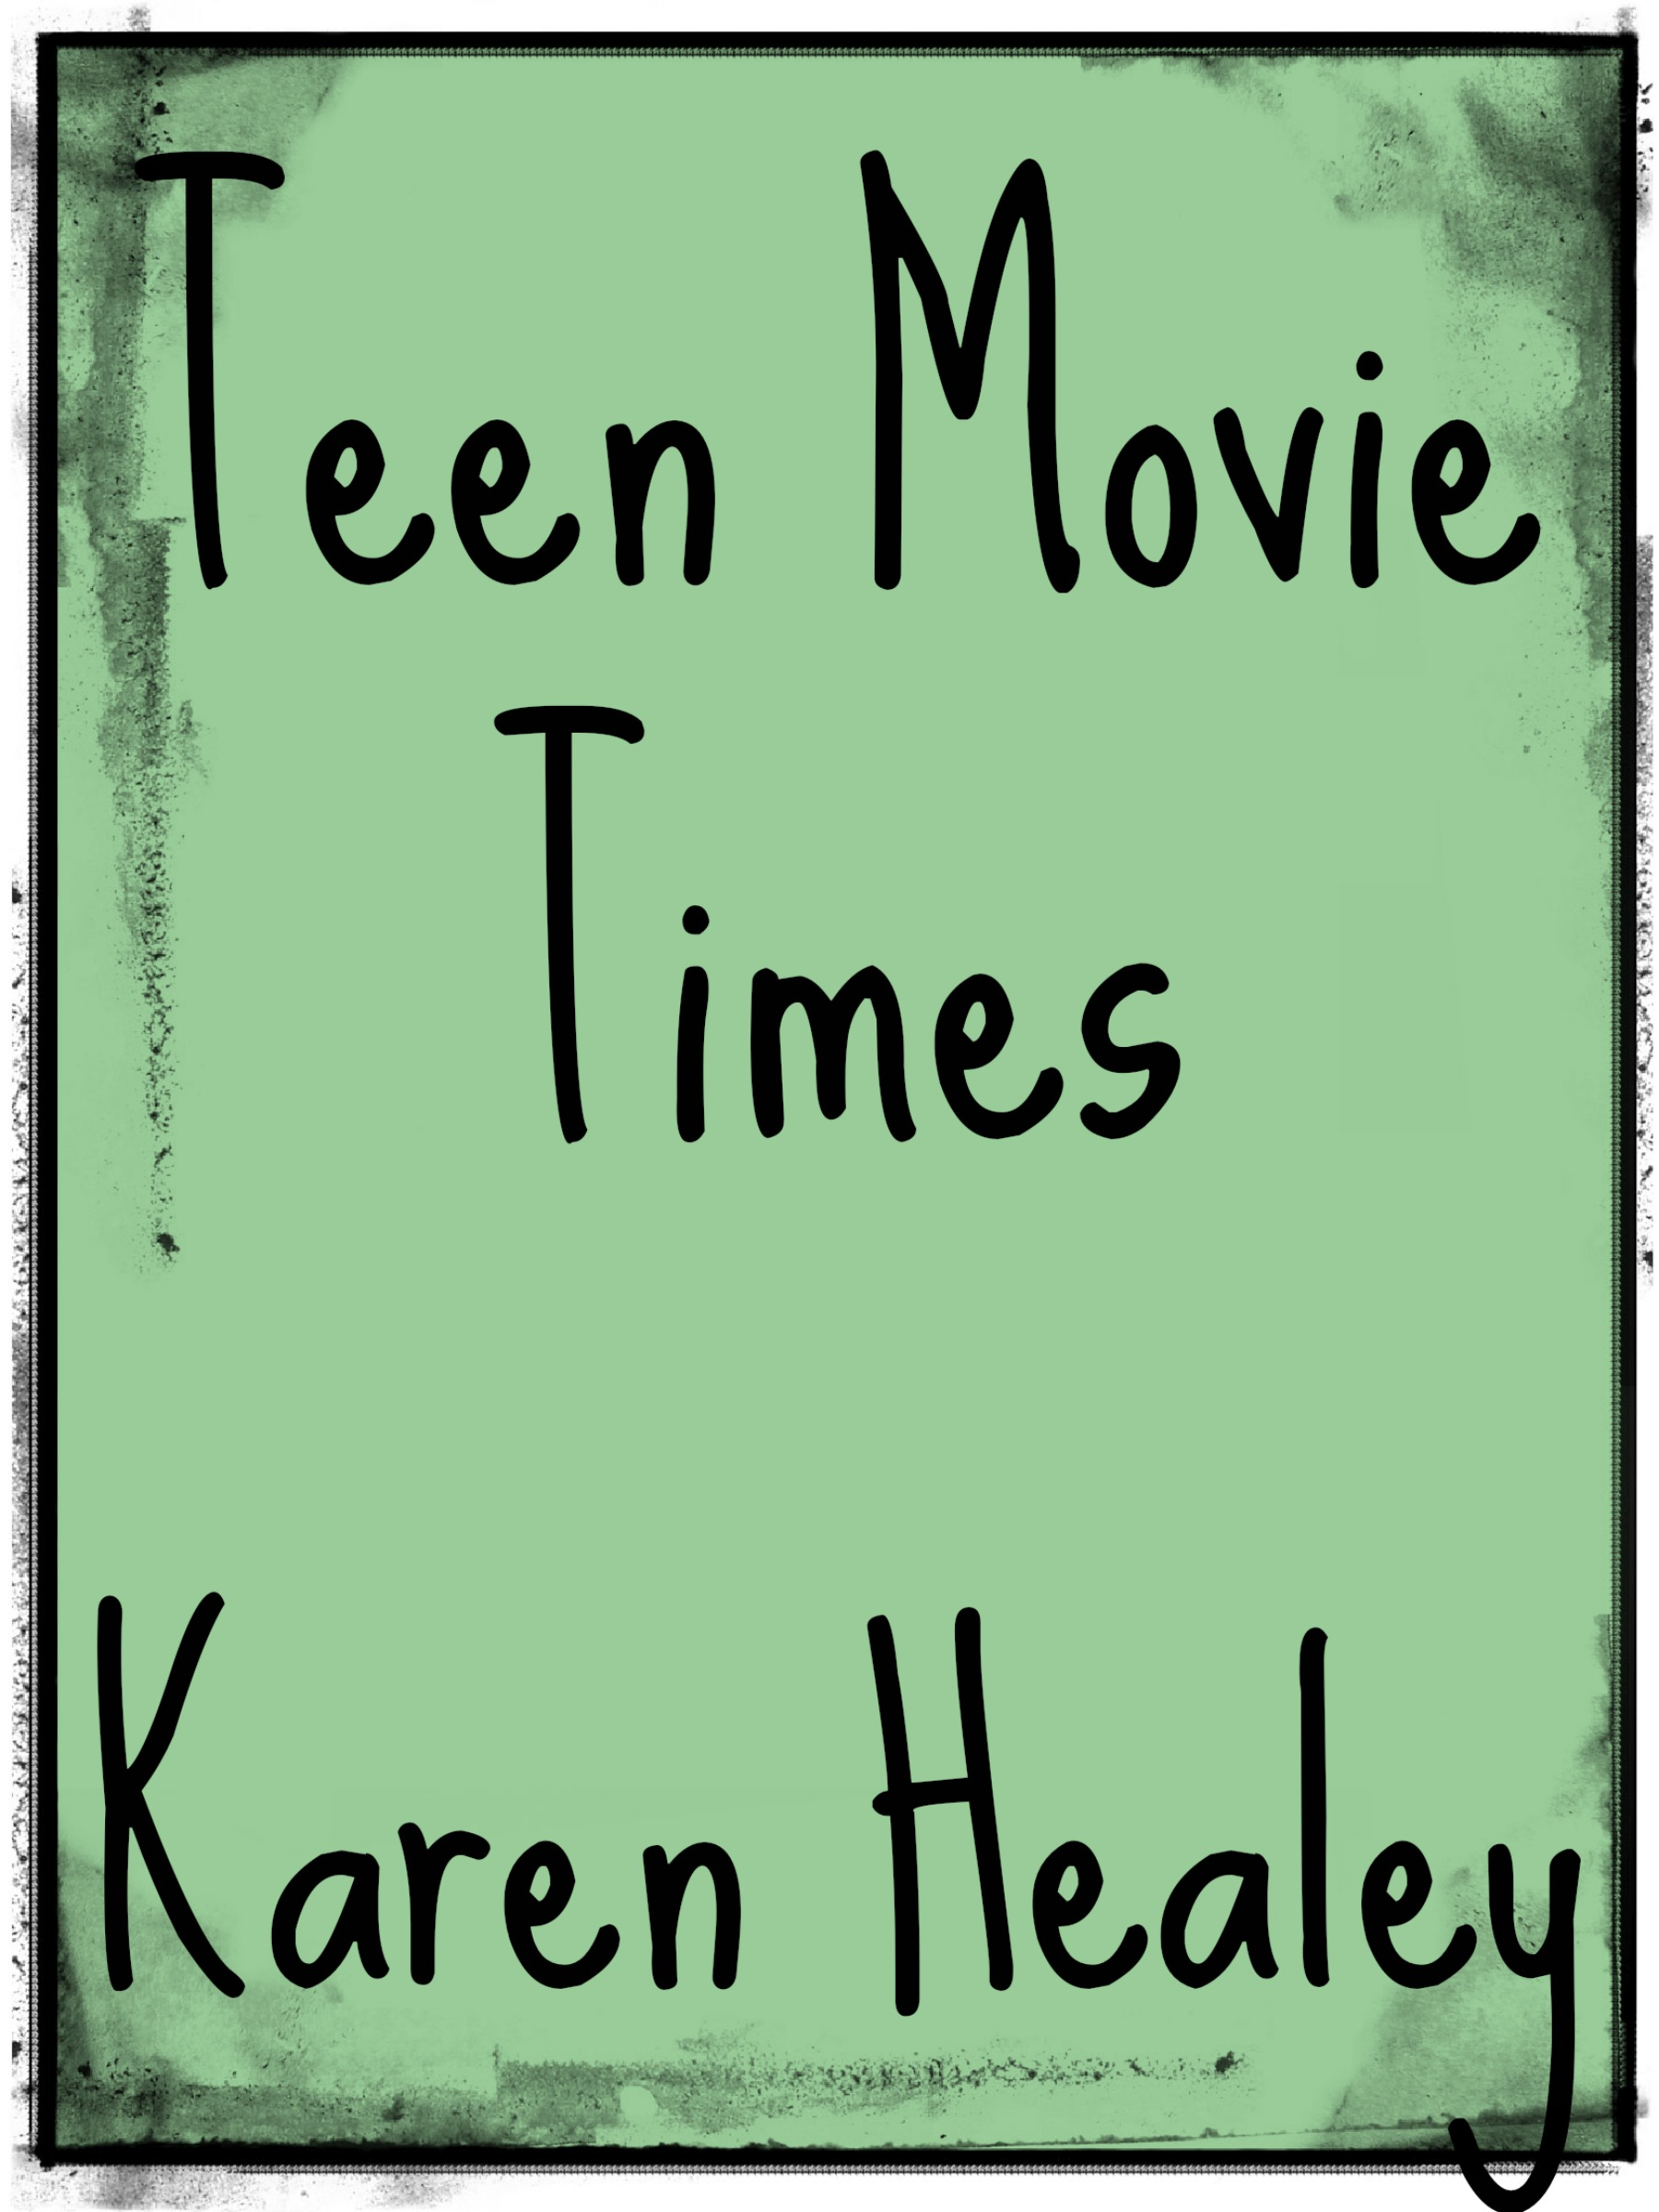 Teen Movie Times: The Ebook!